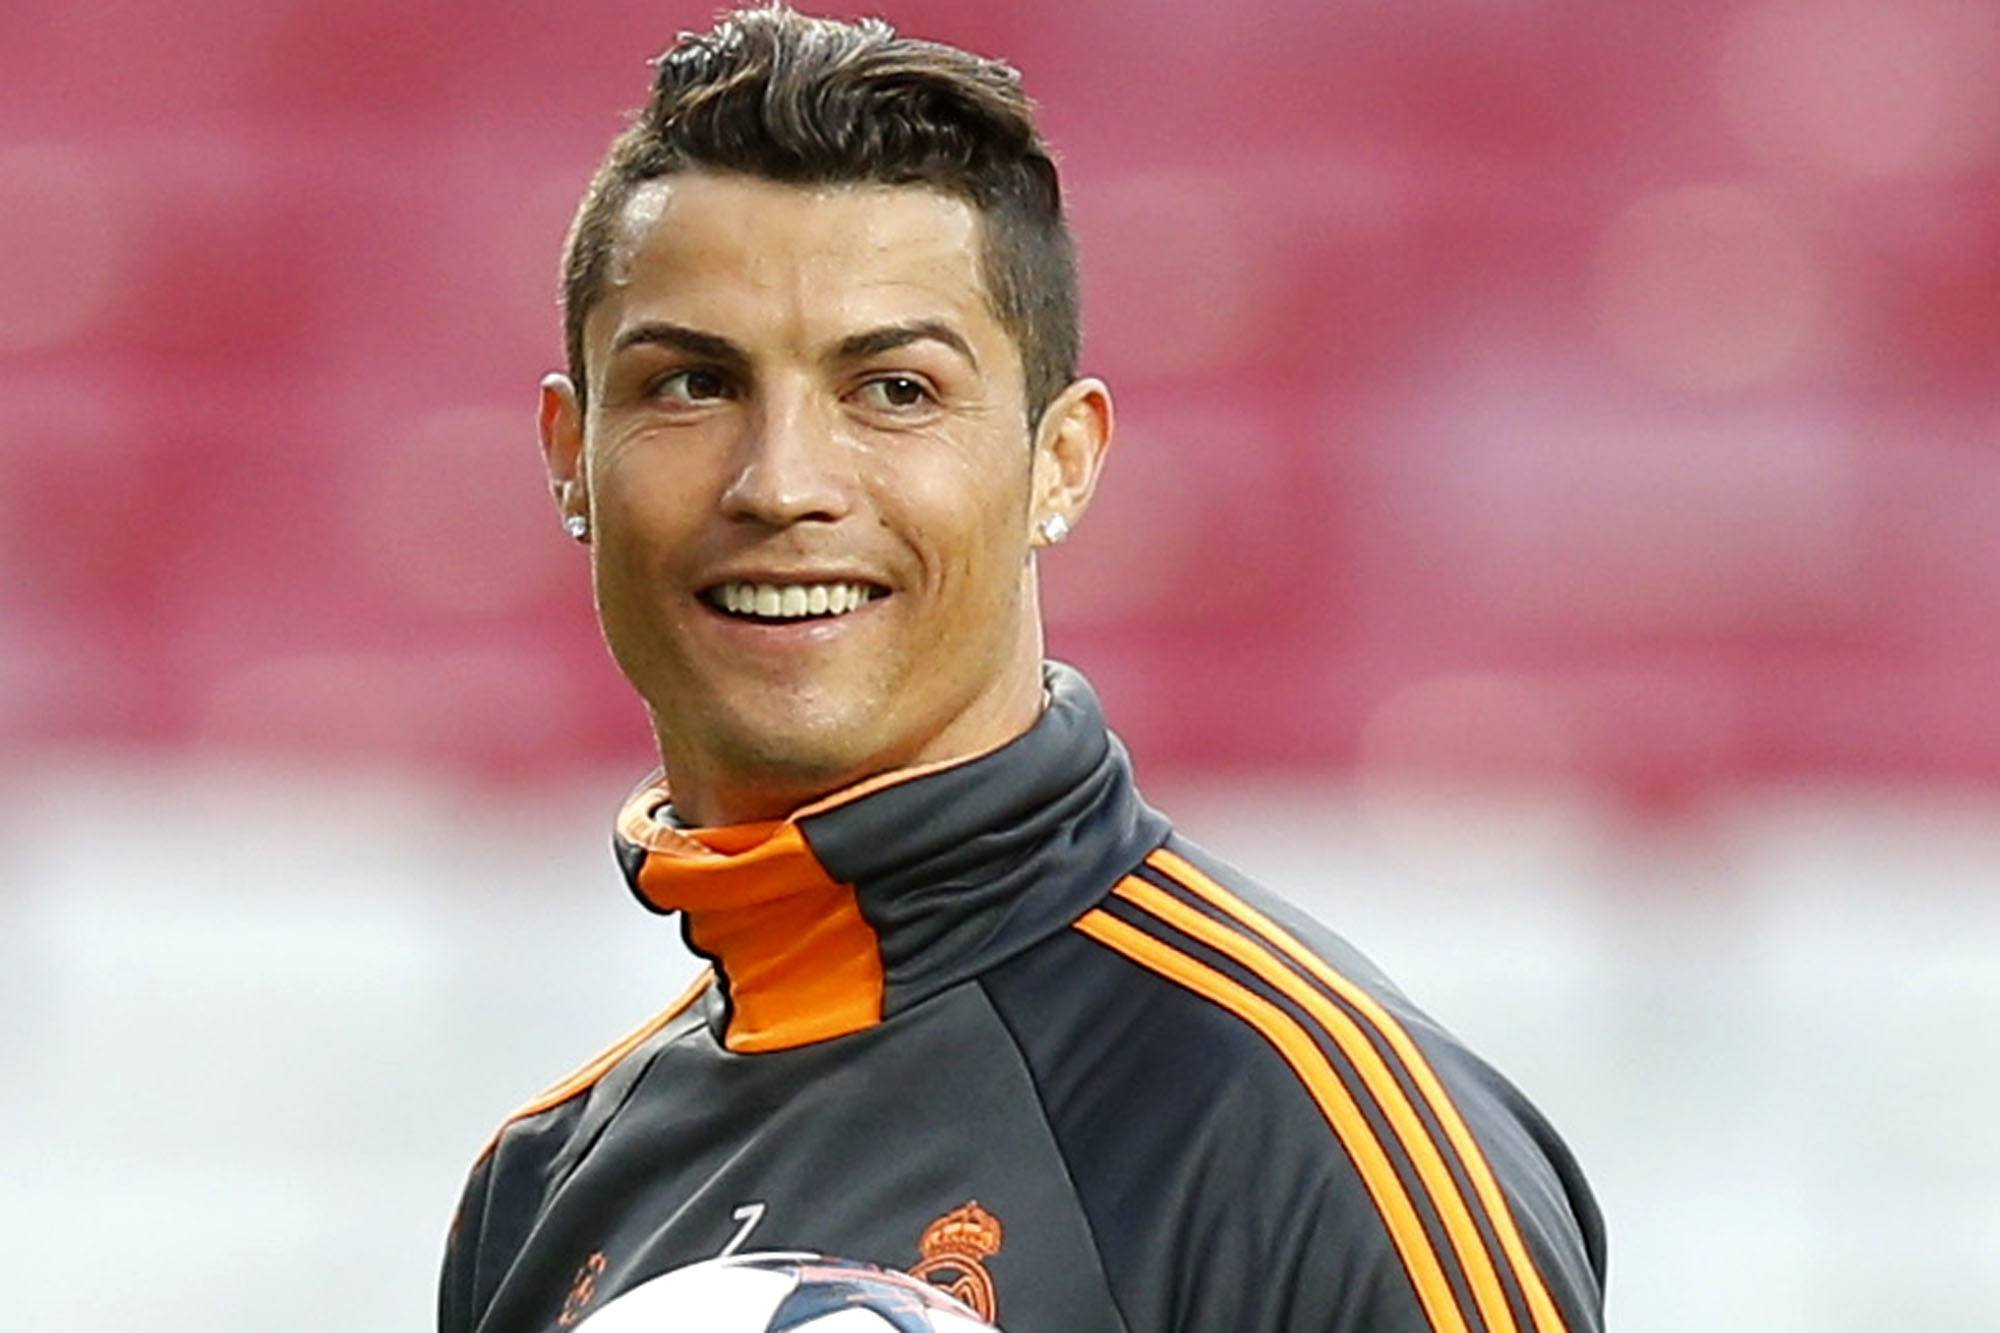 cristiano Cristiano Ronaldo Hairstyles-20 Most Popular Hair Cuts Pics